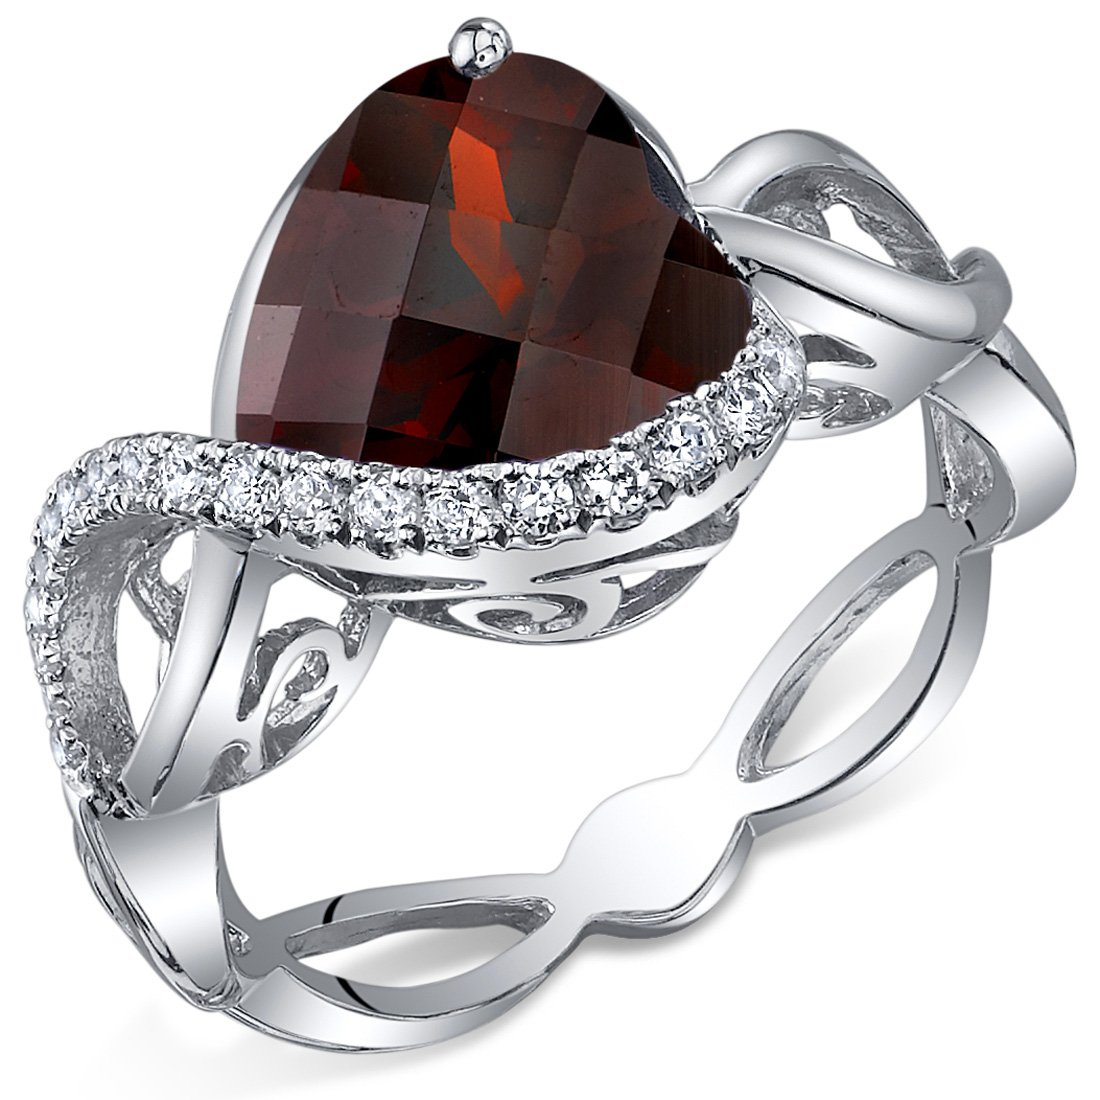 4.00 Carats Garnet Ring Sterling Silver Heart Shape Swirl Design Sizes 5 to 9